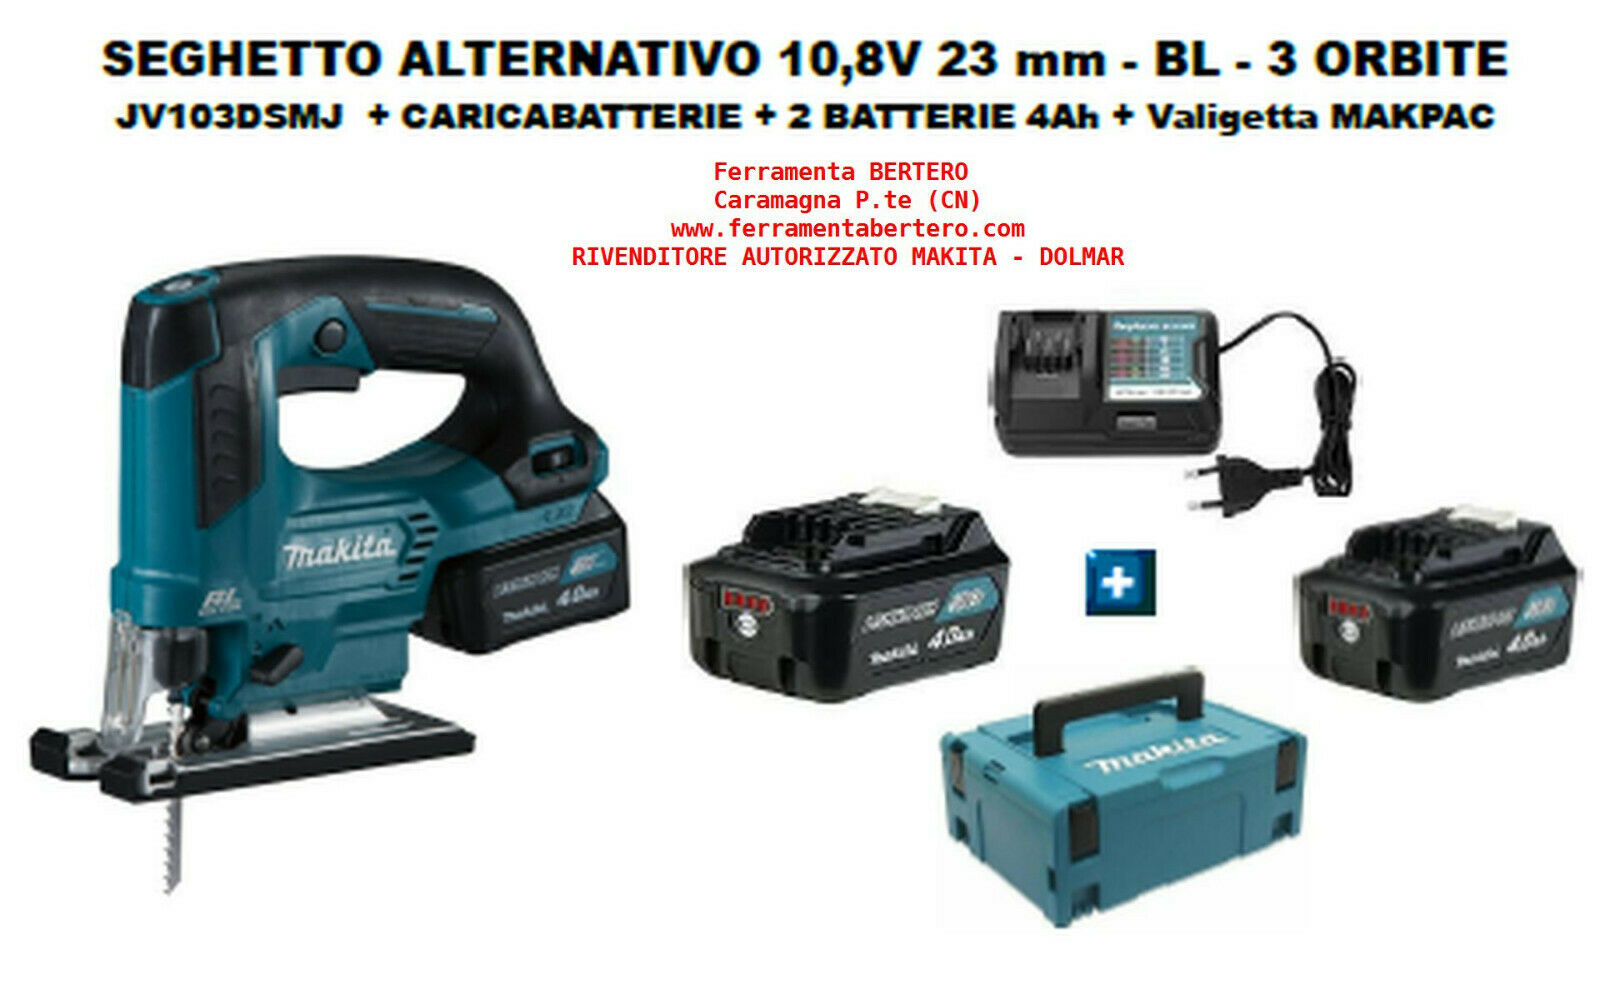 SEGHETTO ALTERNATIVO MAKITA 10,8V (12V) +caricabatt. + 2 batterie 4Ah + MAKPAC